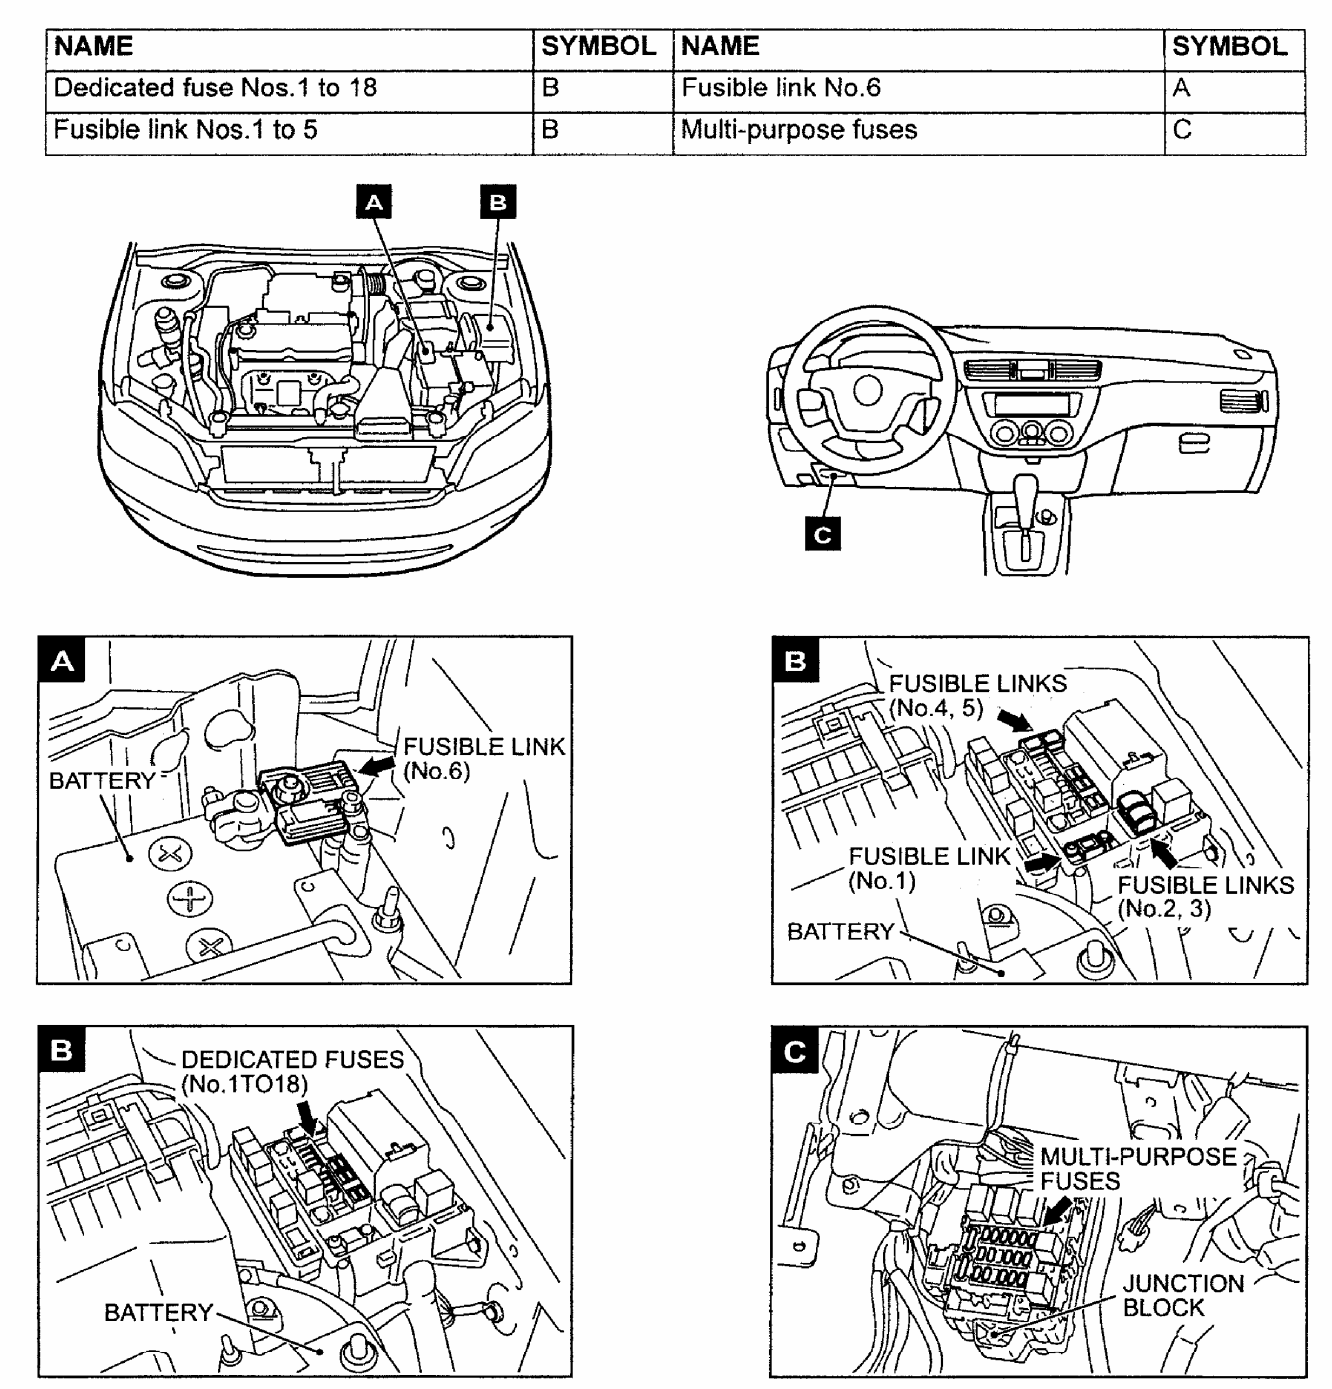 2003 Mitsubishi Lancer Fuse Box Location Wiring Diagram Explained 2000  Buick Park Avenue Fuse Box Location 2000 Mitsubishi Diamante Fuse Box  Location